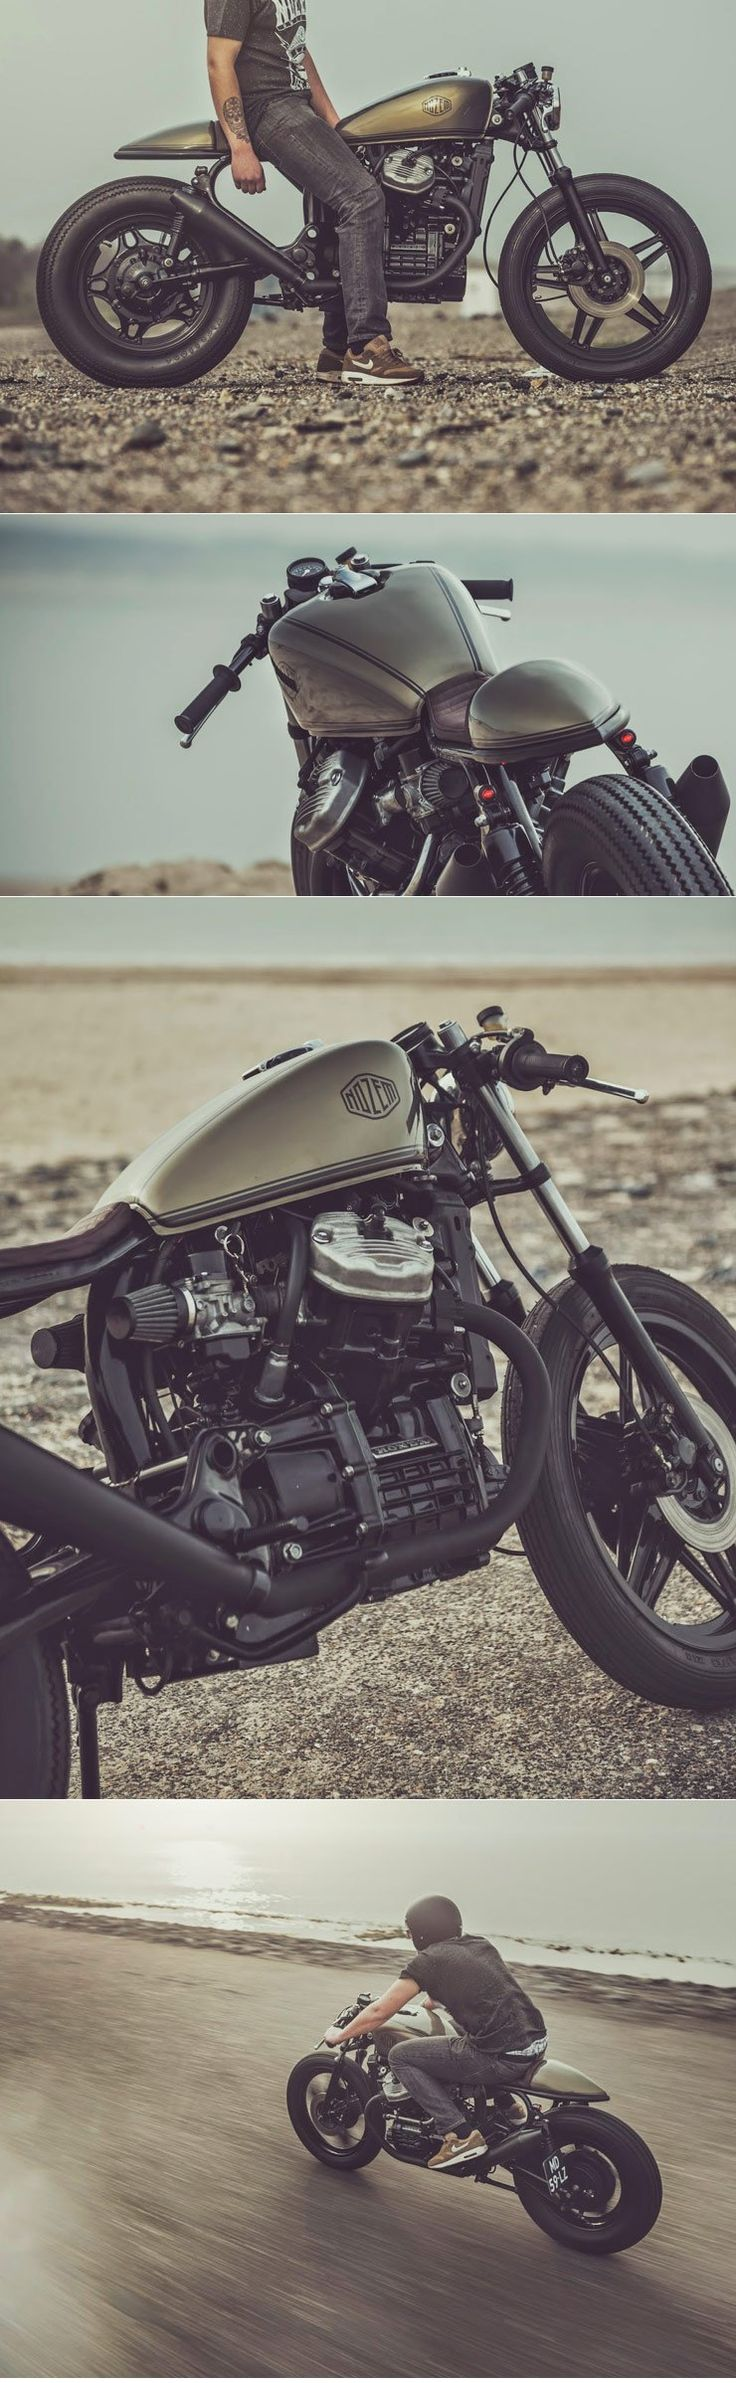 God damn this a good looking bike. Cafe racers look too good.